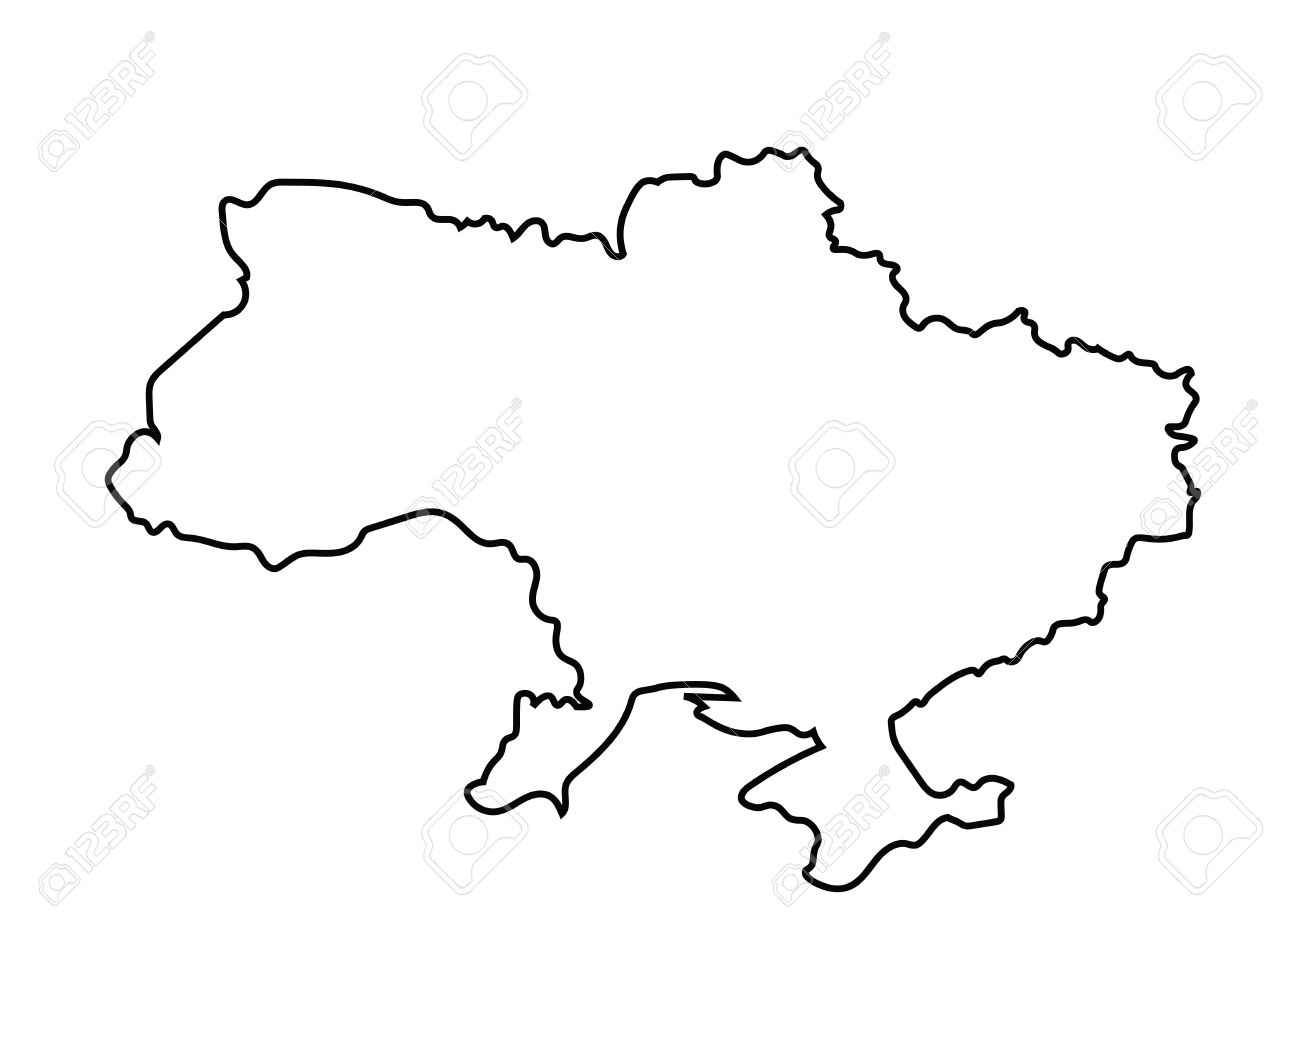 Black Outline Of Ukraine Map Royalty Free Cliparts Vectors And Stock Illustration Image 38348026